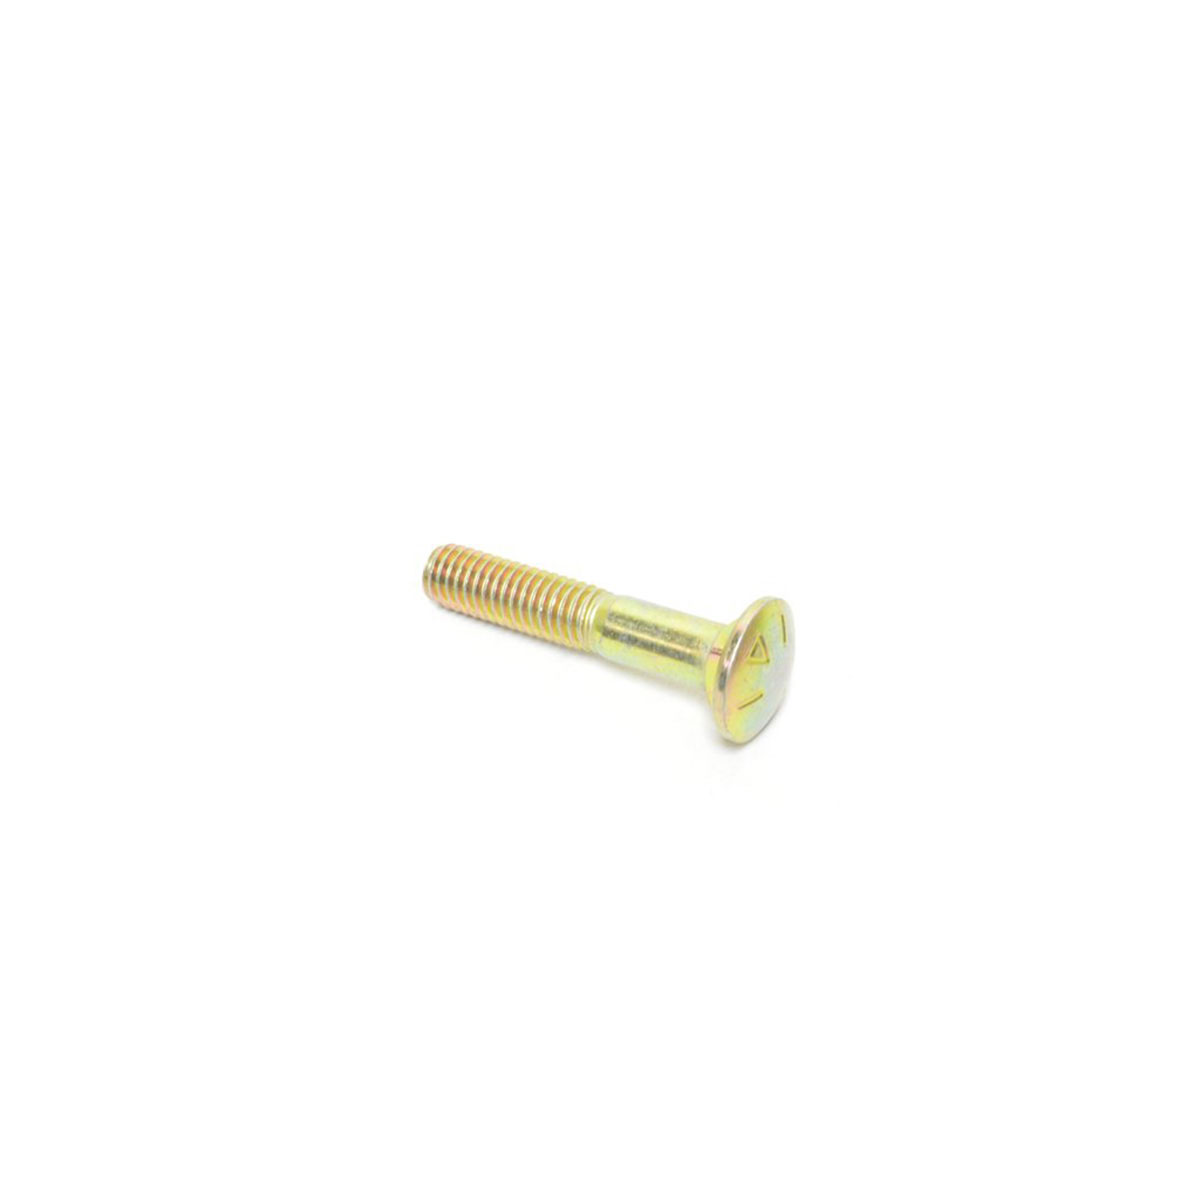 Scag Carriage Bolt 3/8-16 x 2 inch 04003-03